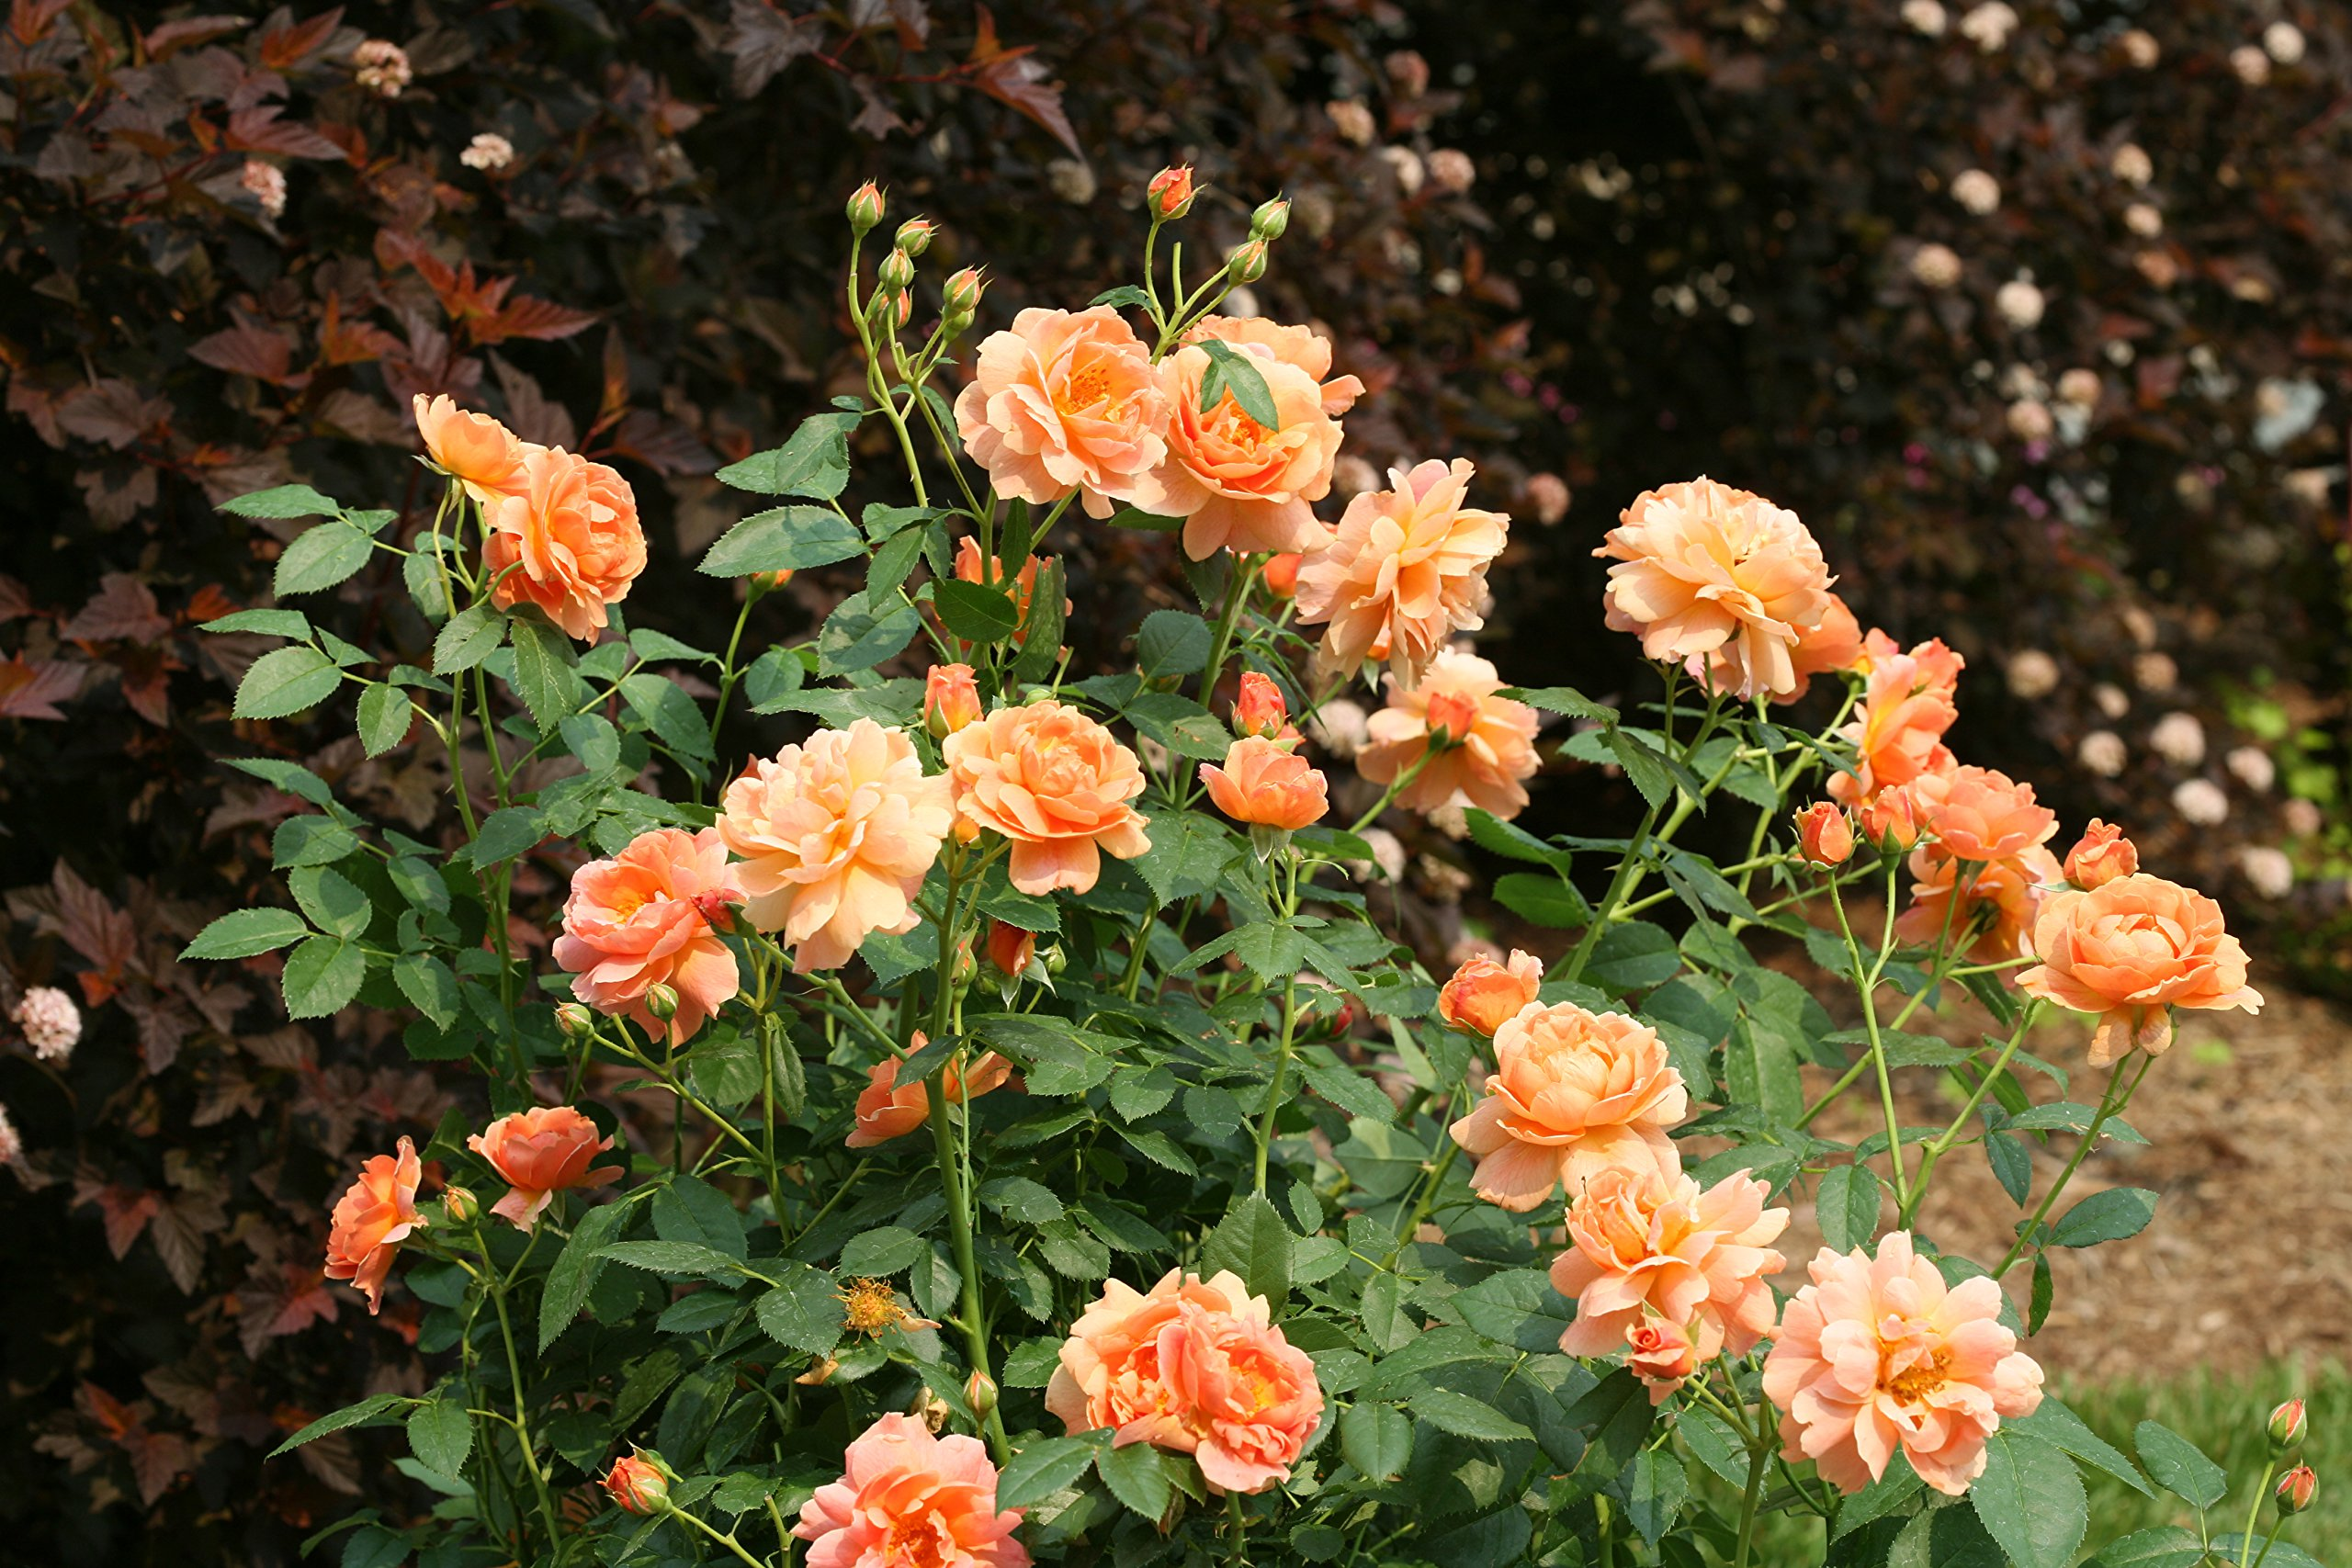 At Last Rose (Rosa) Live Shrub, Orange Flowers, 4.5 in. Quart by Proven Winners (Image #7)